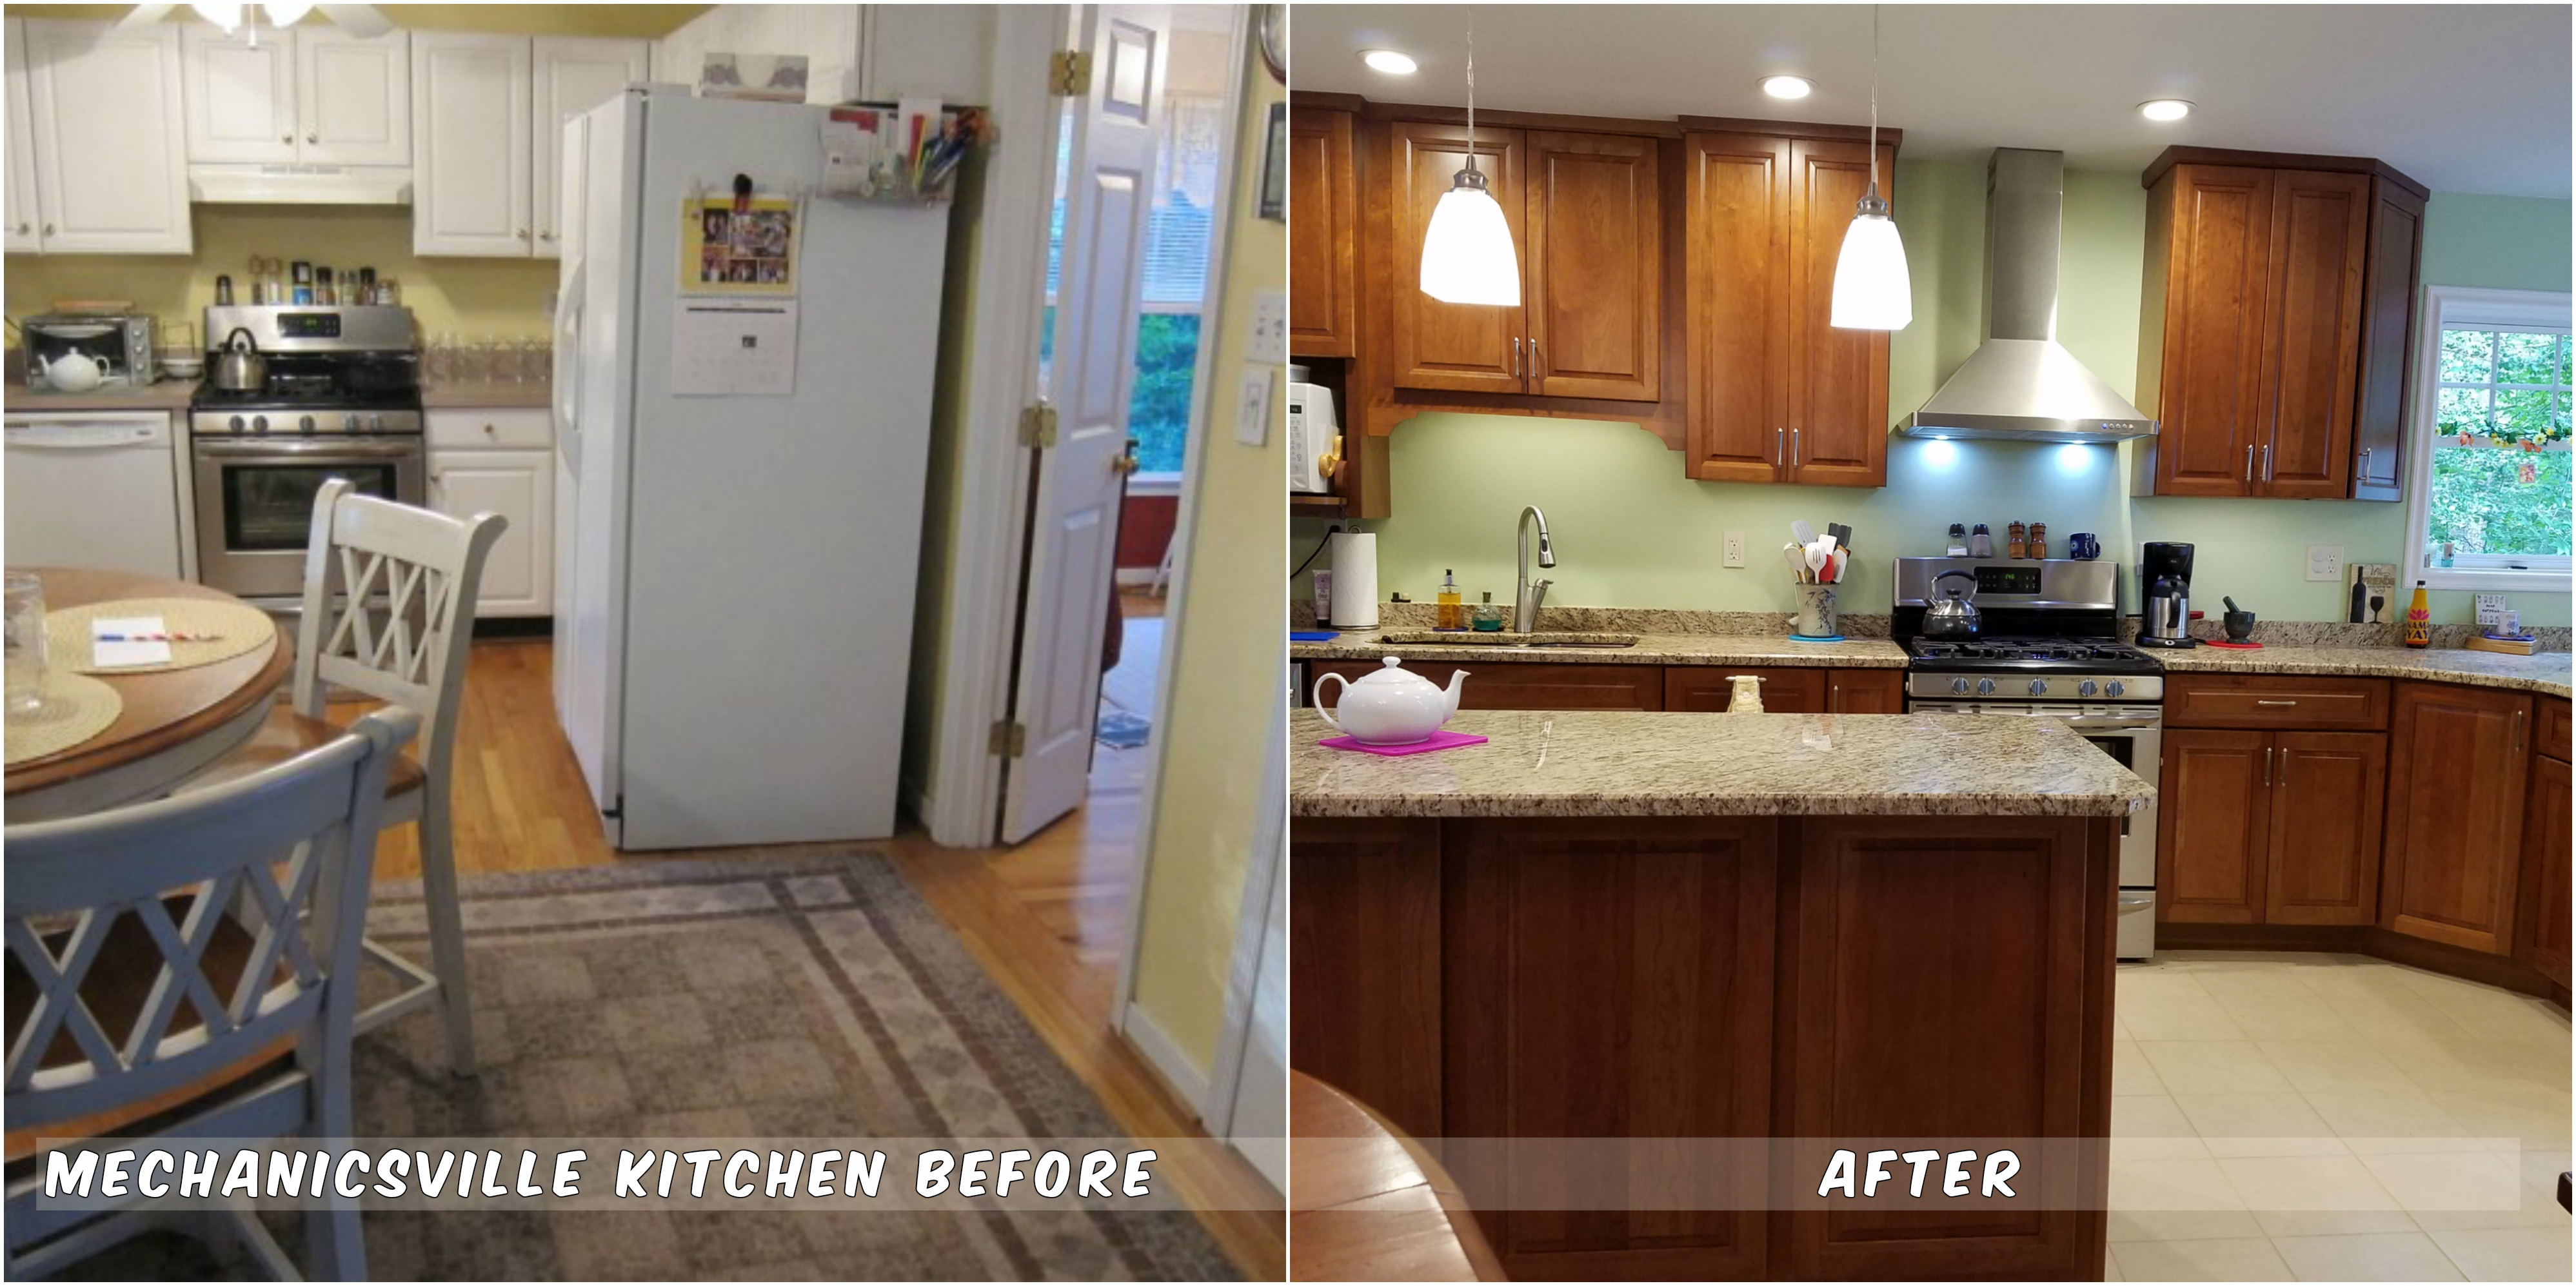 amazing kitchen remodeling contractor. Before and after of kitchen remodel by ODI Remodeling Contractor  VA Old Dominion Innovations Inc